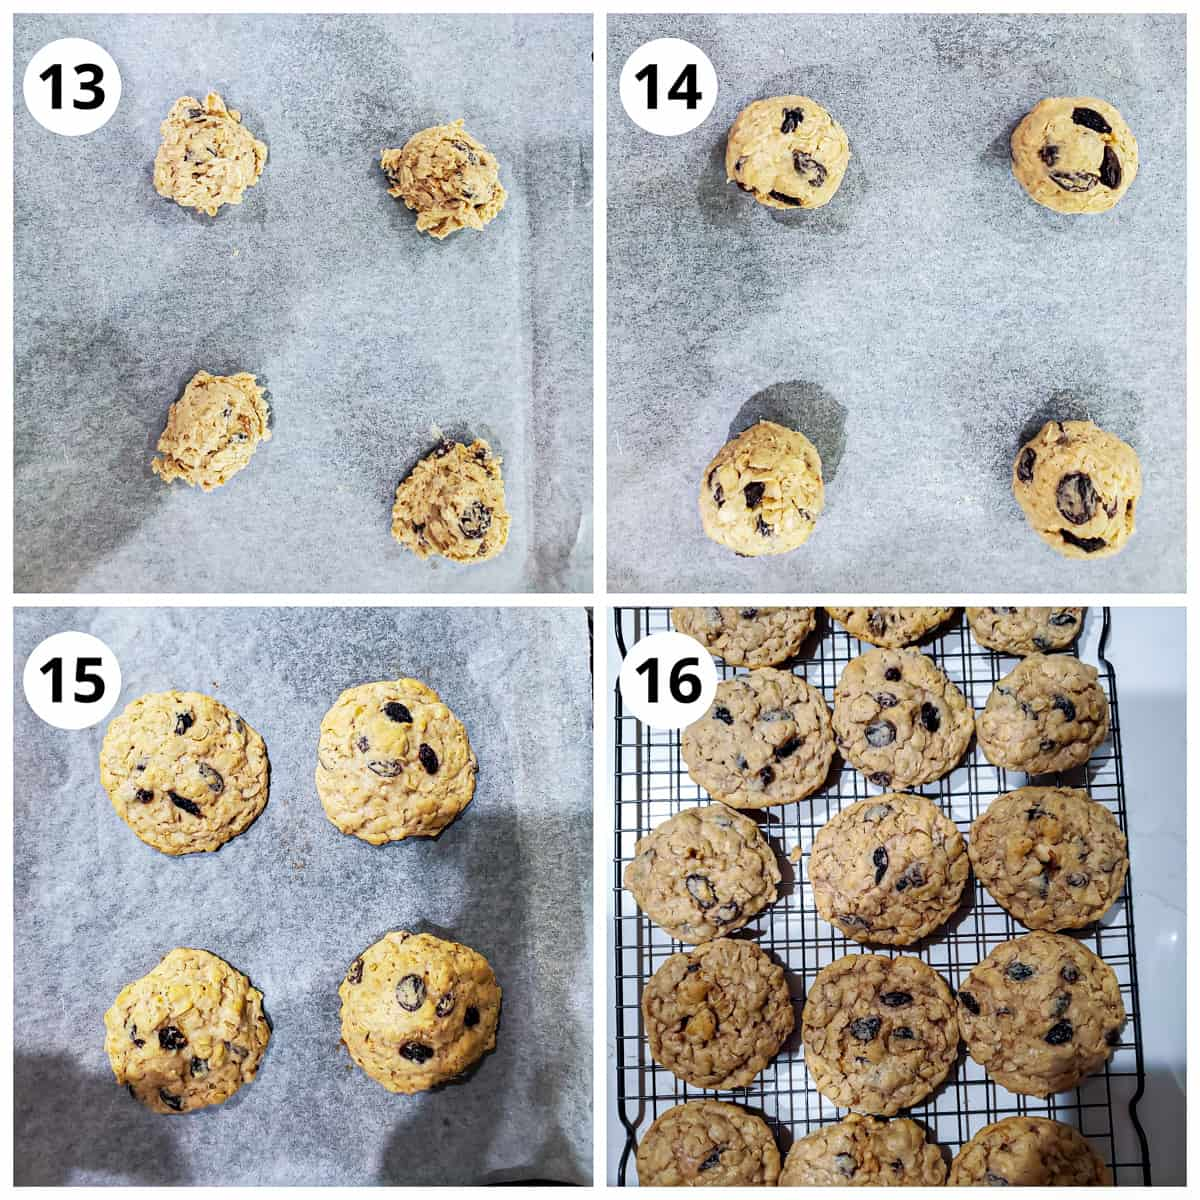 steps for baking the oatmeal raisin cookies